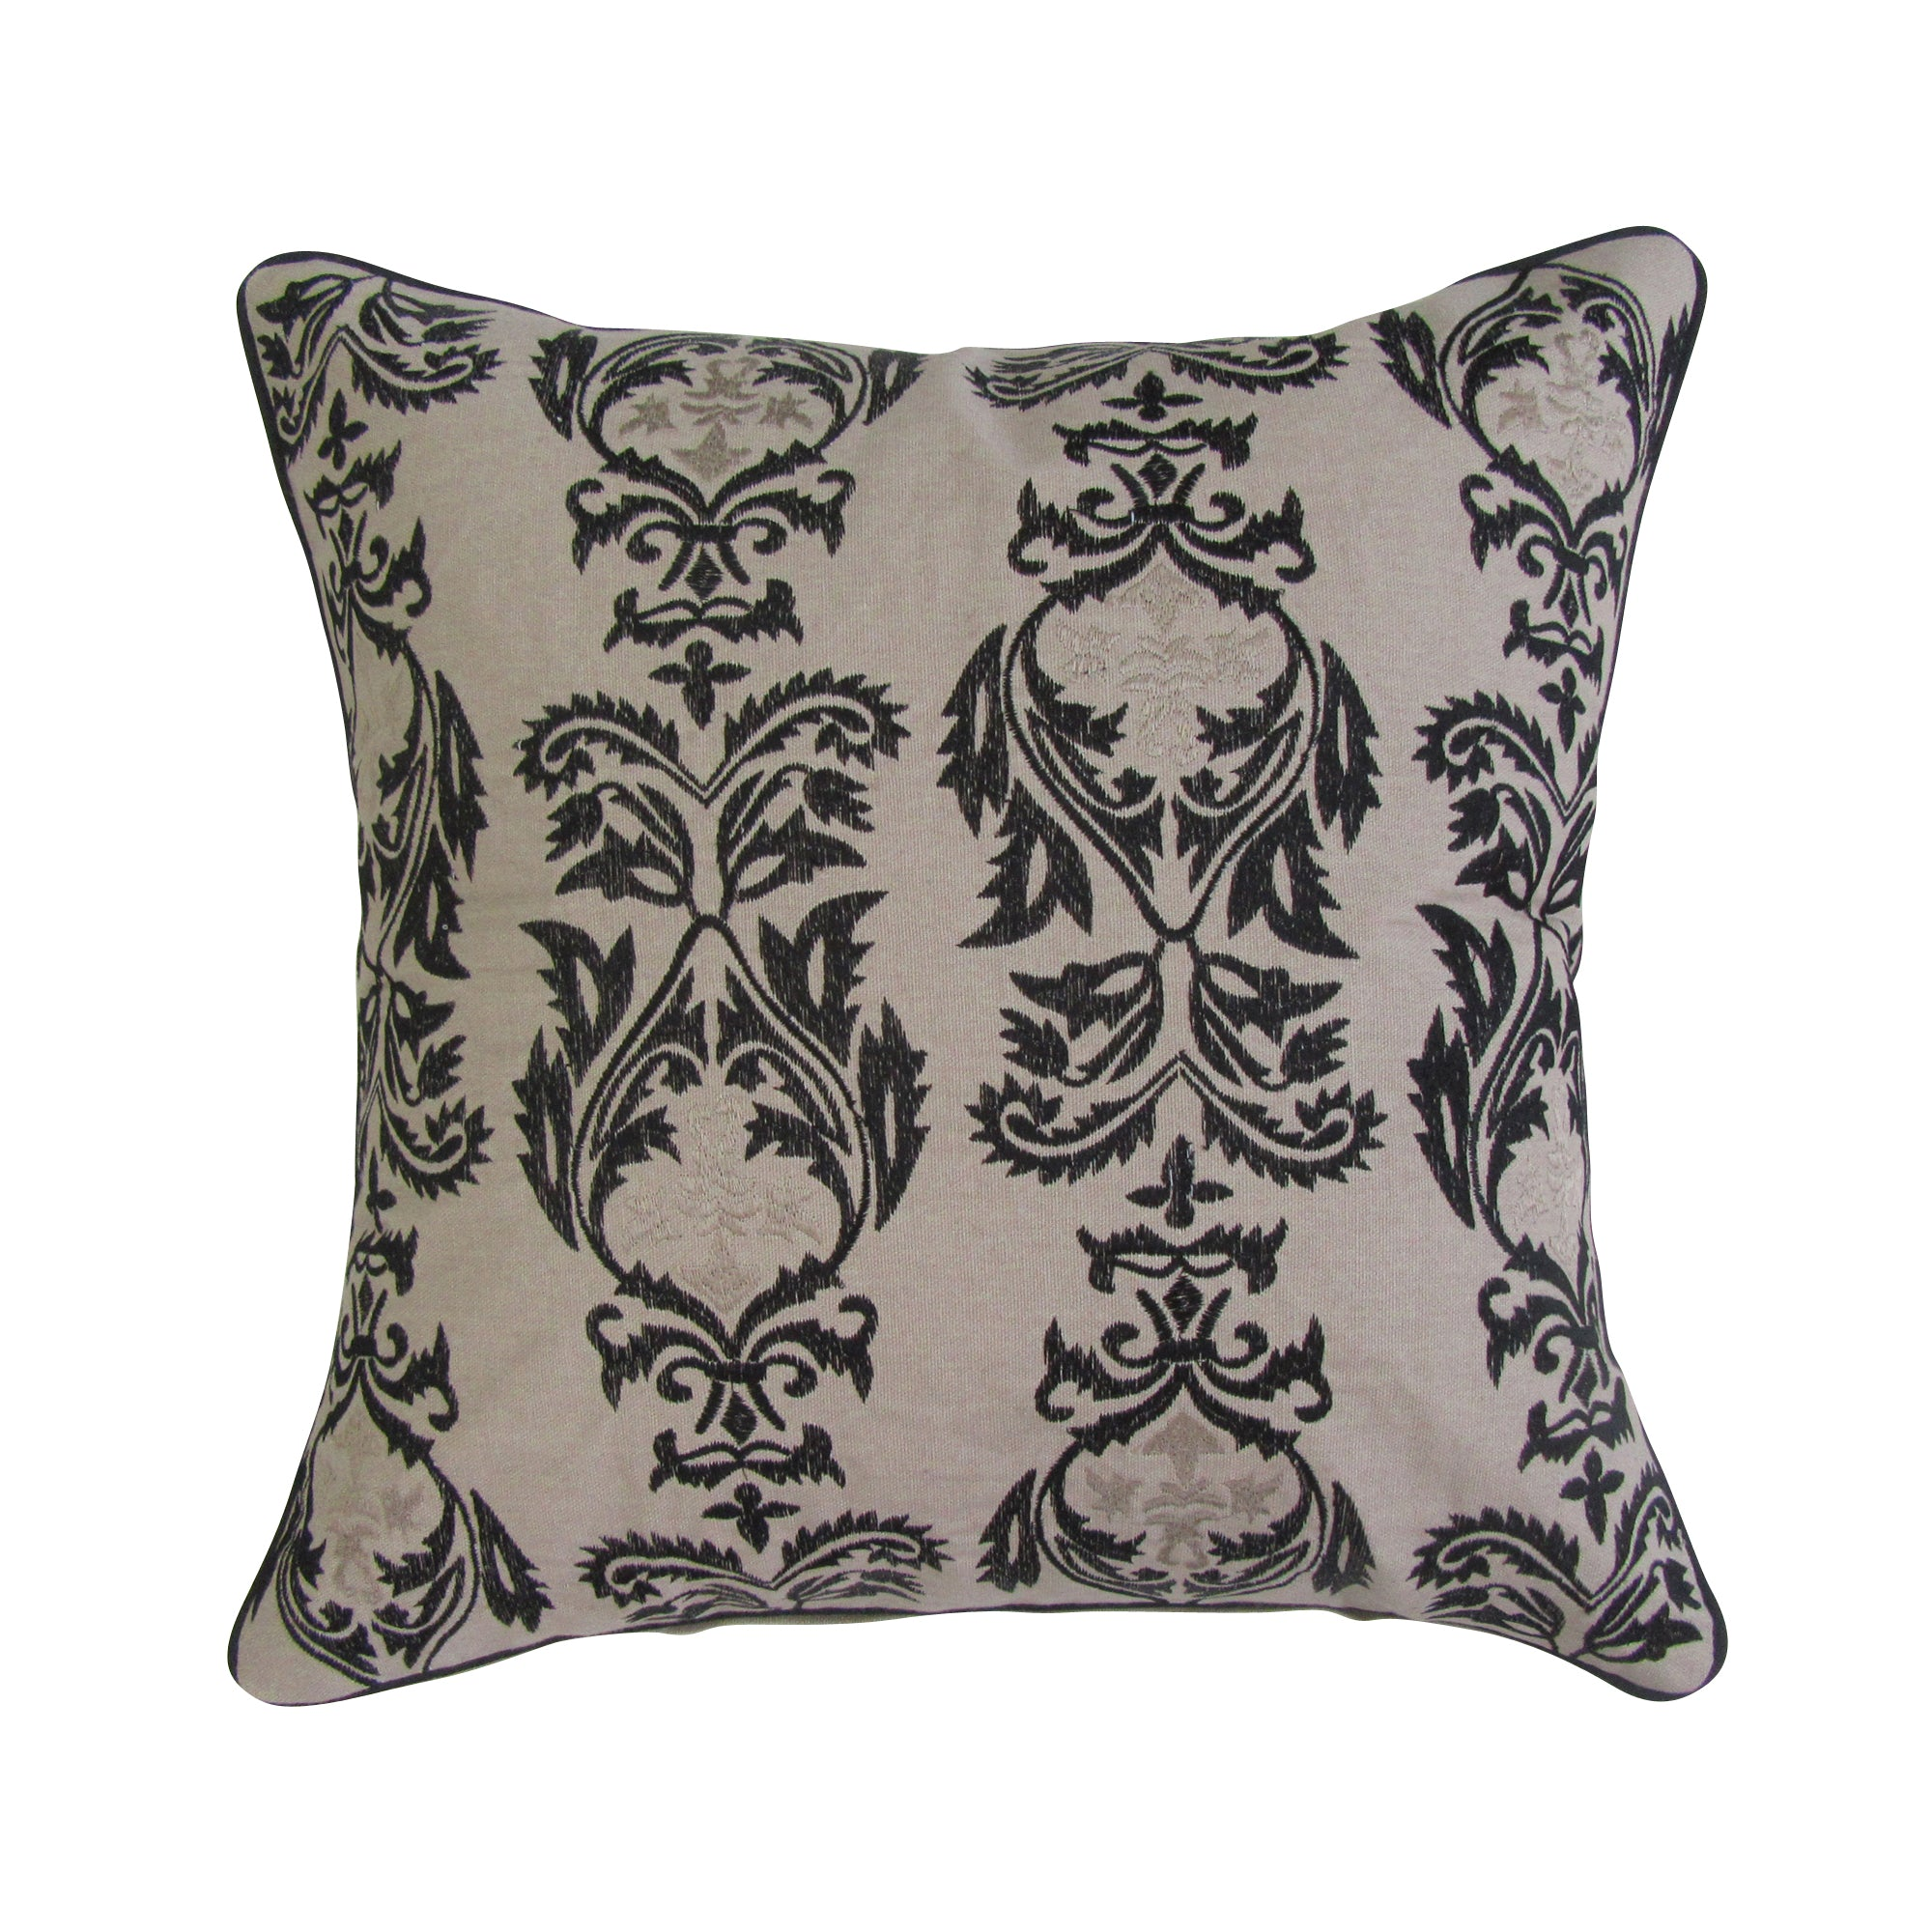 Marrakesh Inspired Embroidered Accent Pillow